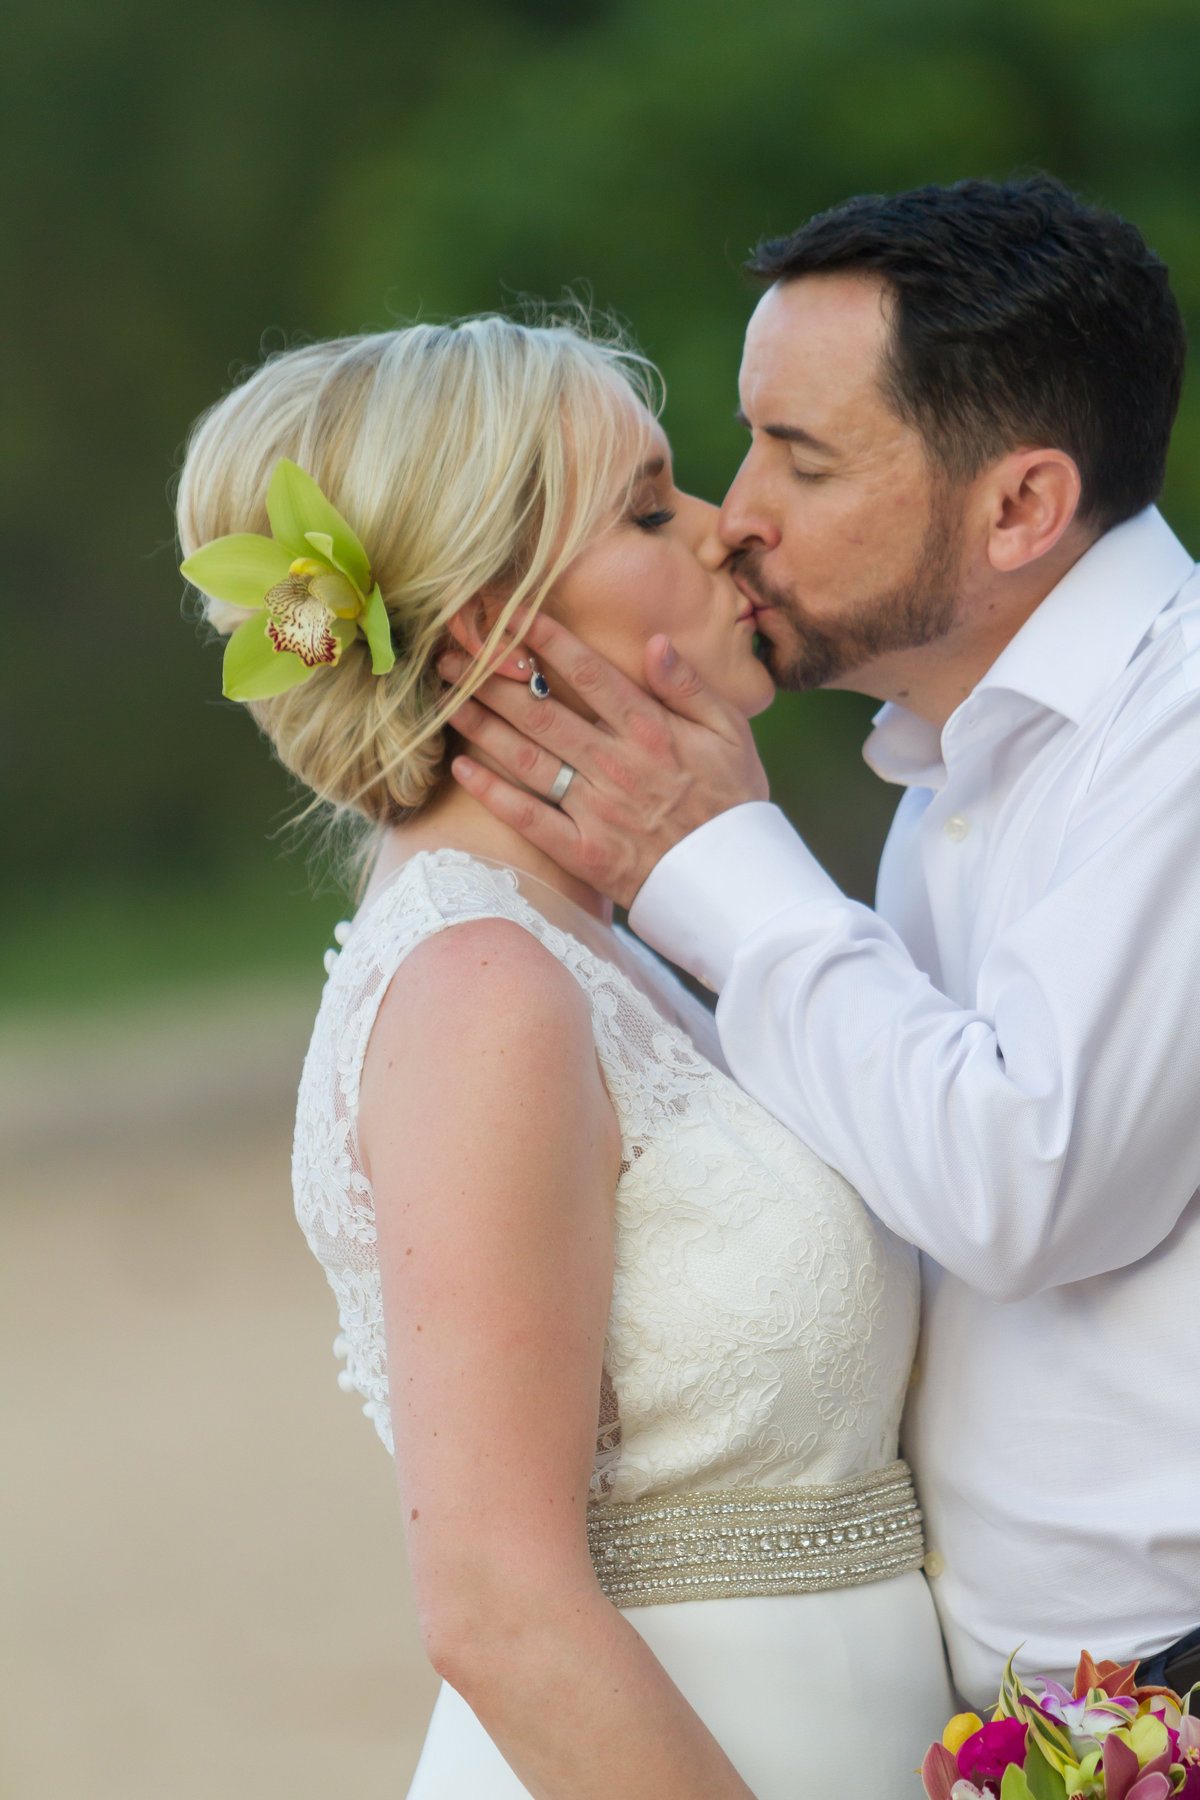 Bride with orchid in her hair and groom kissing.